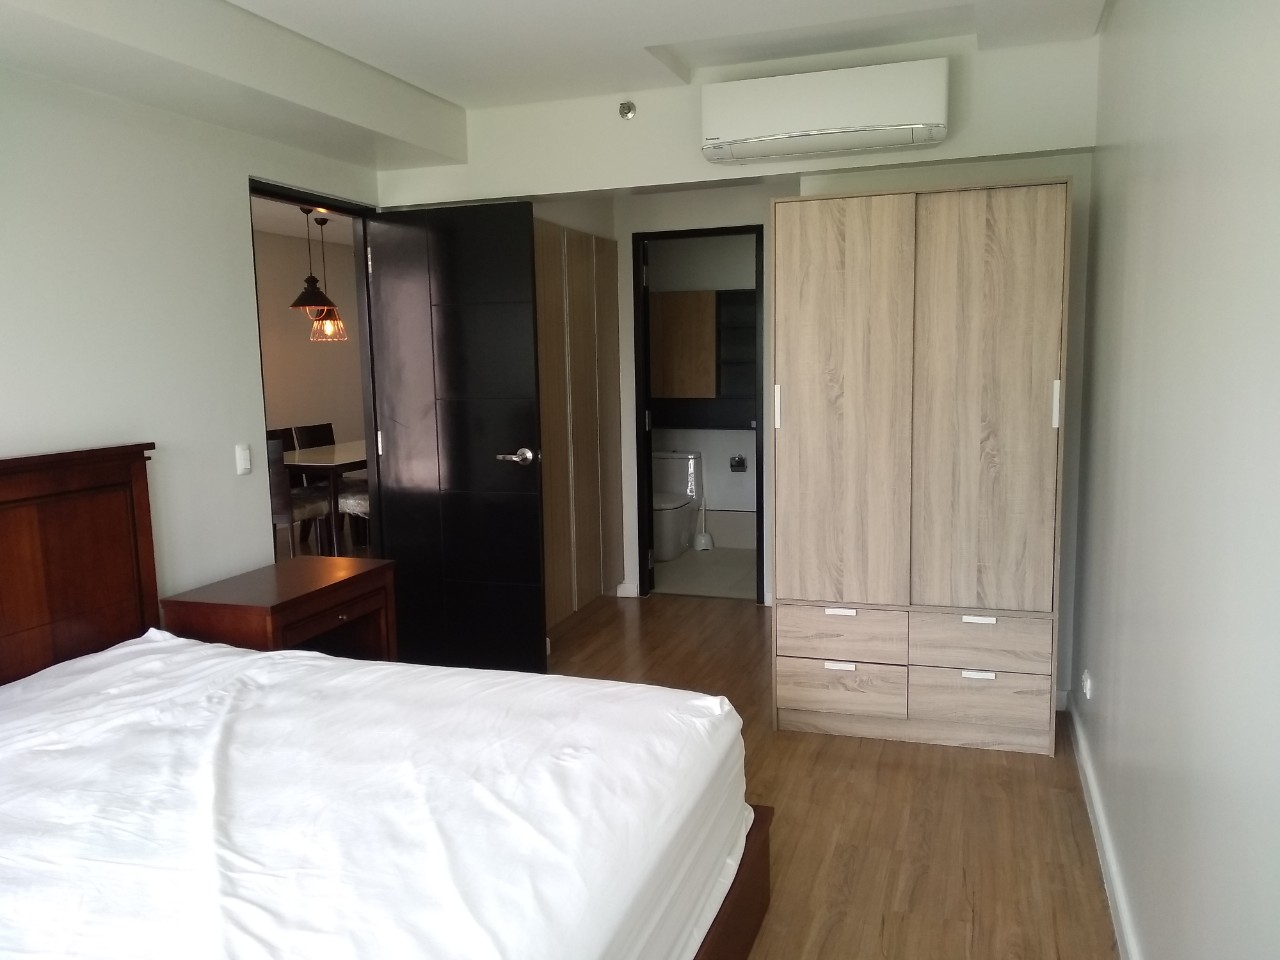 3BR Condo For Lease, The Sequoia at Two Serendra 17